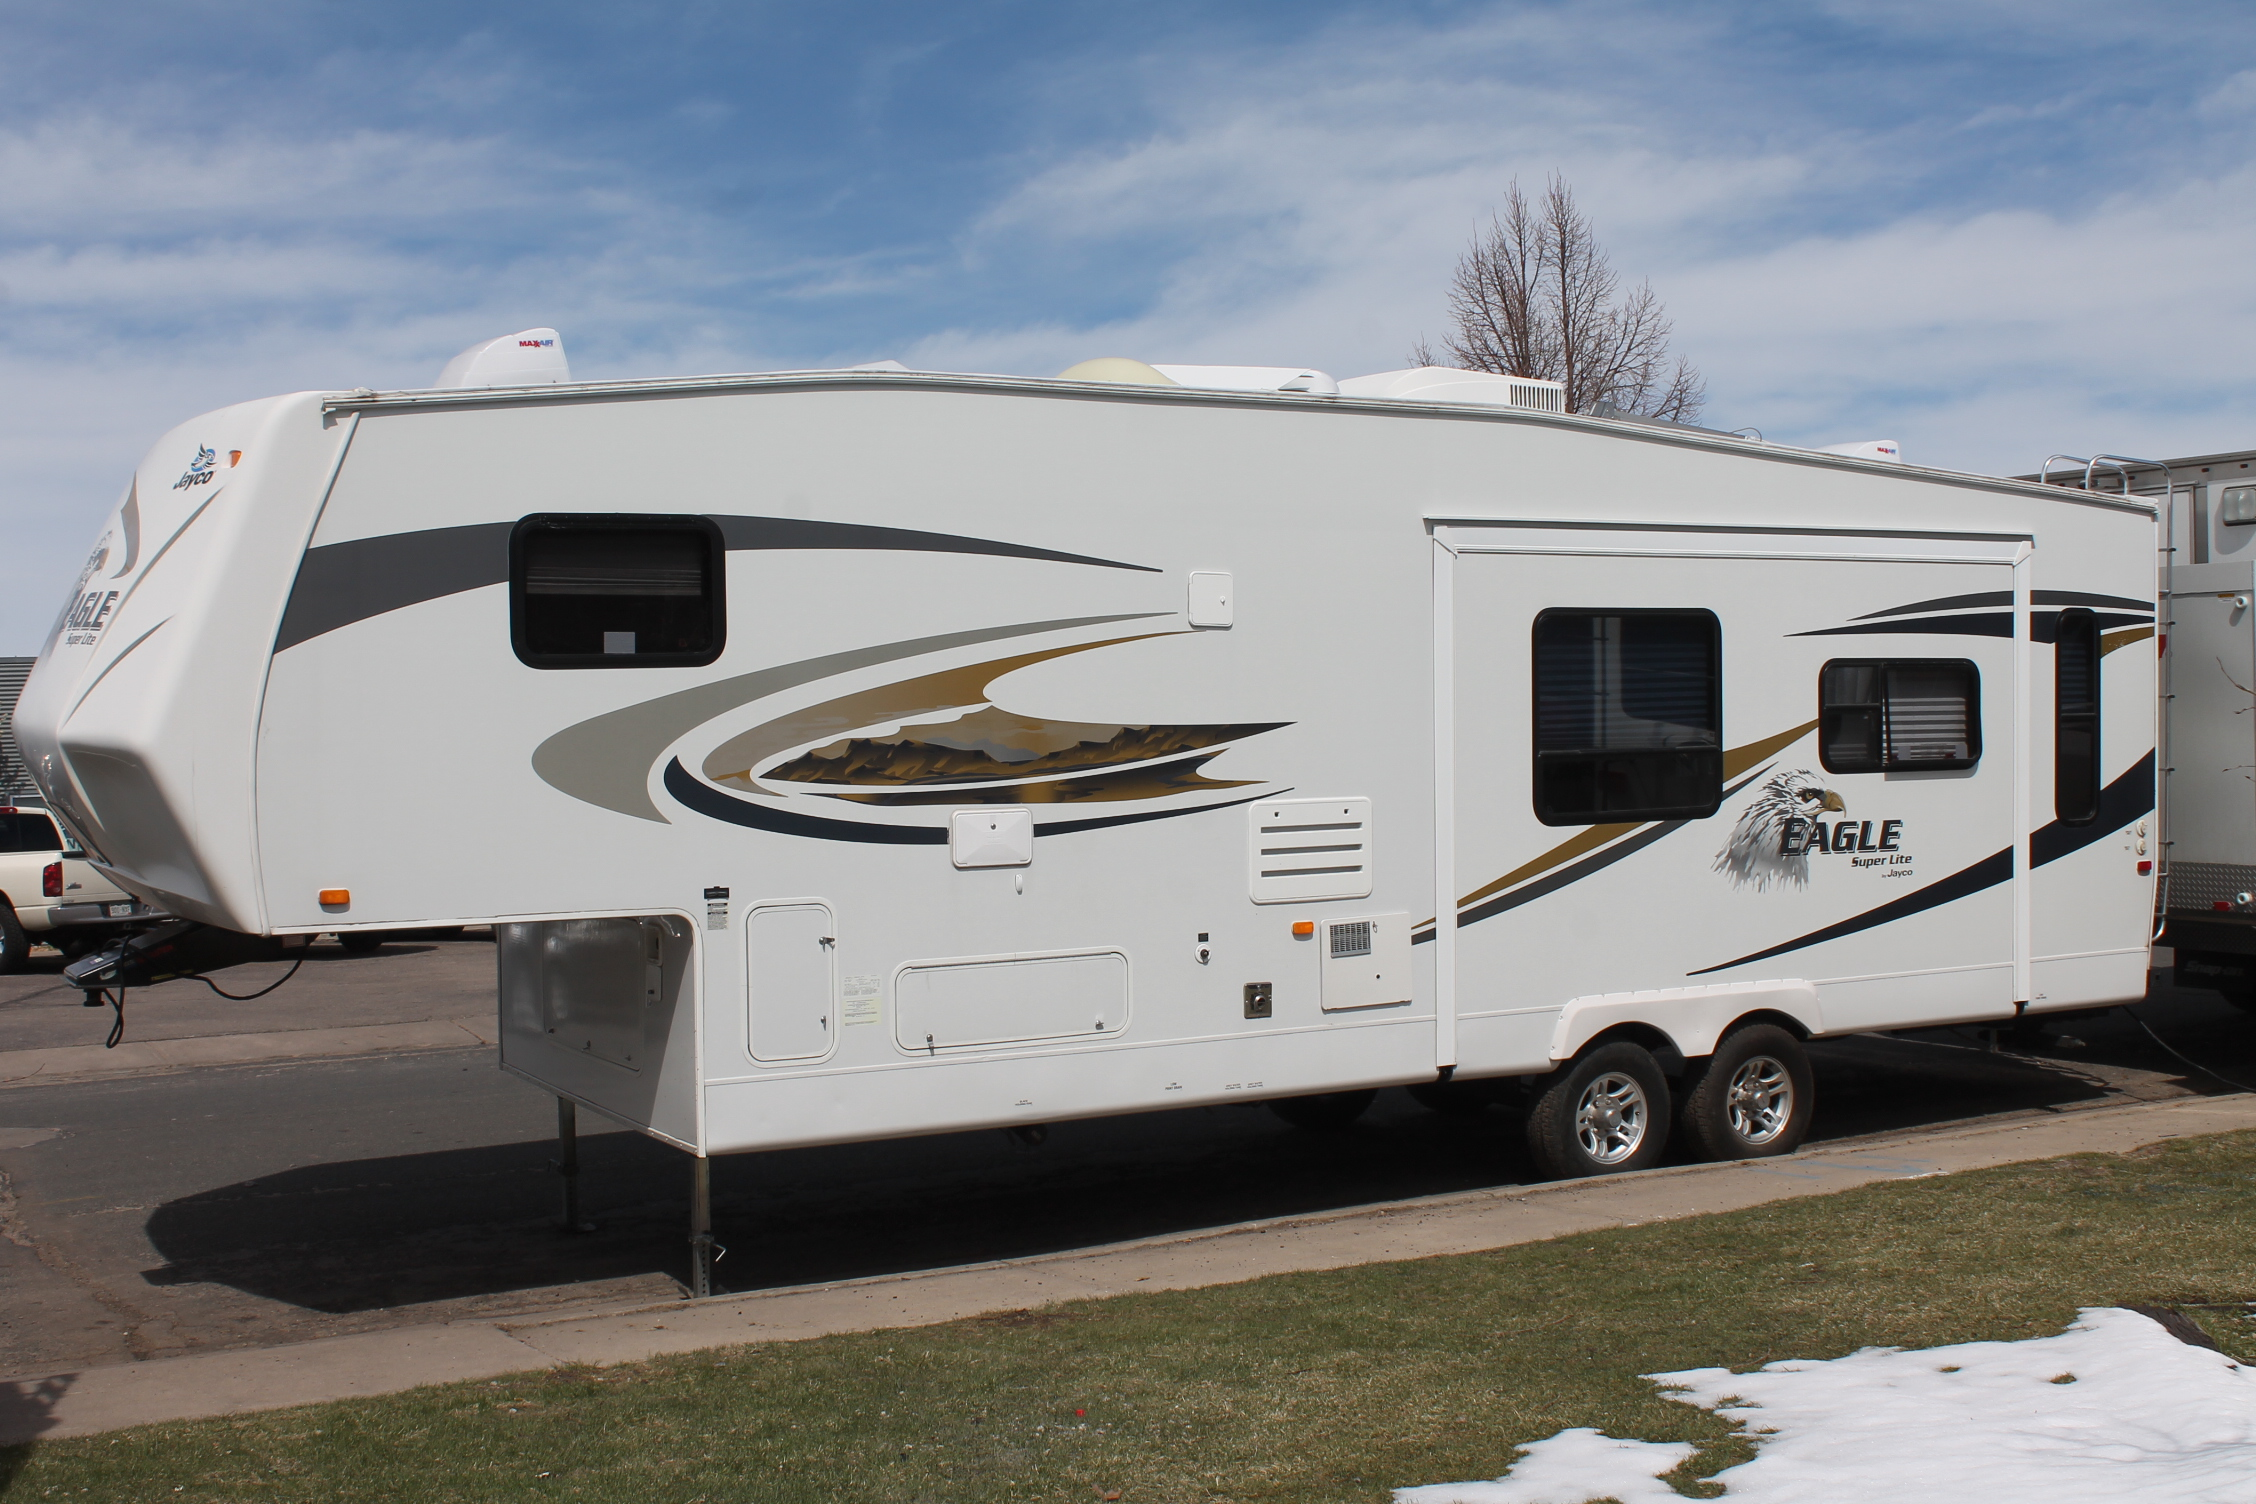 Th Wheel Travel Trailers For Sale